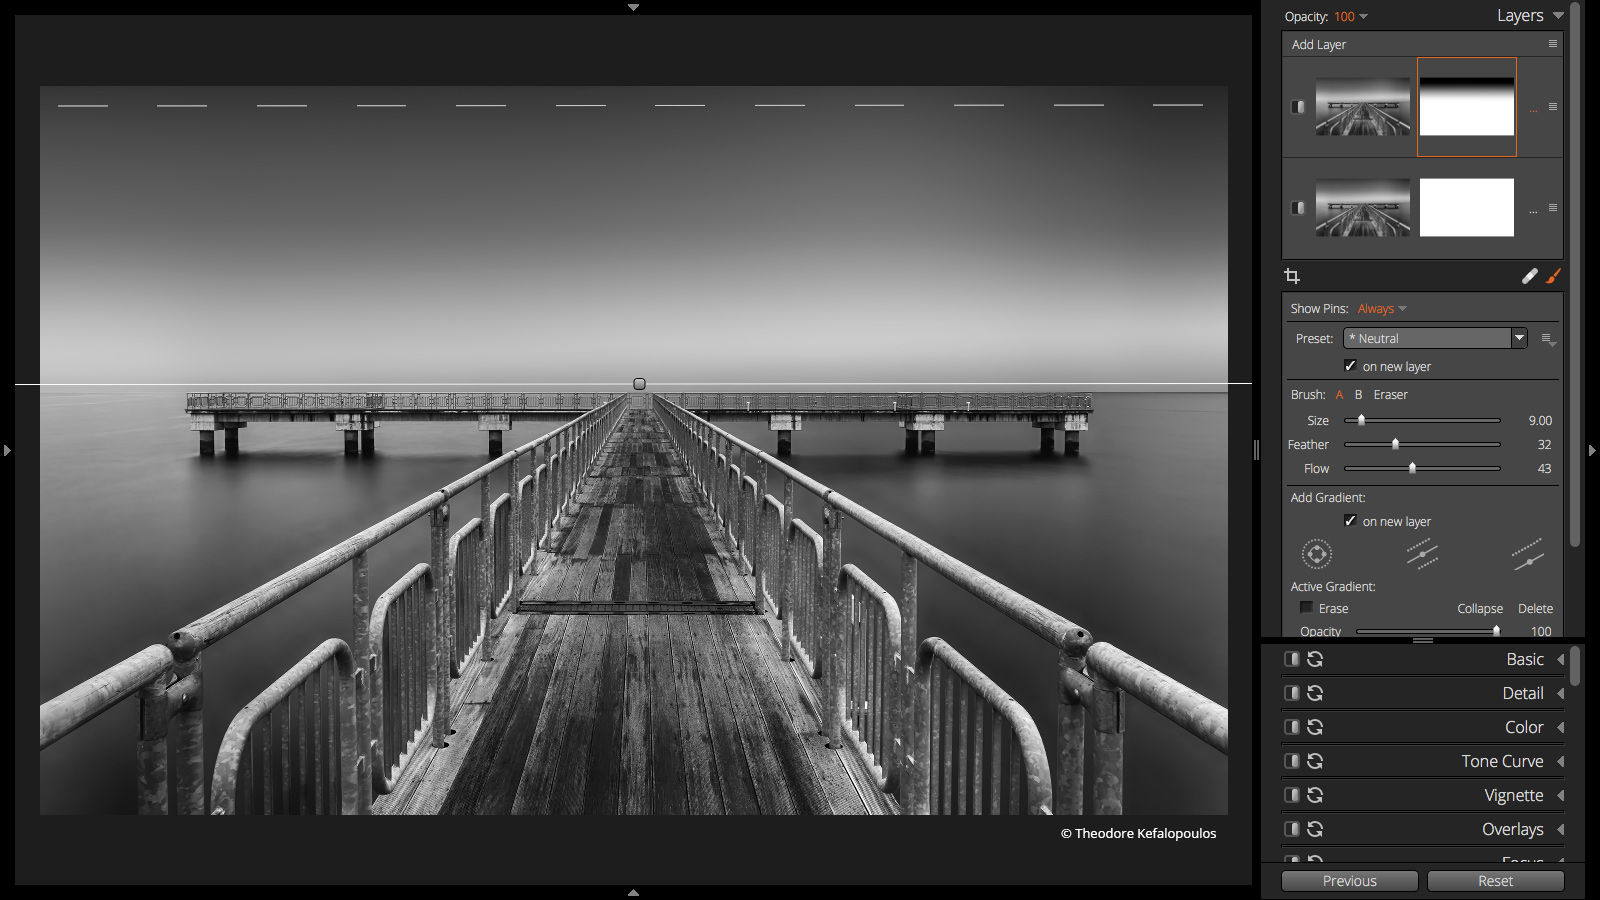 Customizable Effects - dock image with linear radial tools visible by Theodore Kefalopoulos